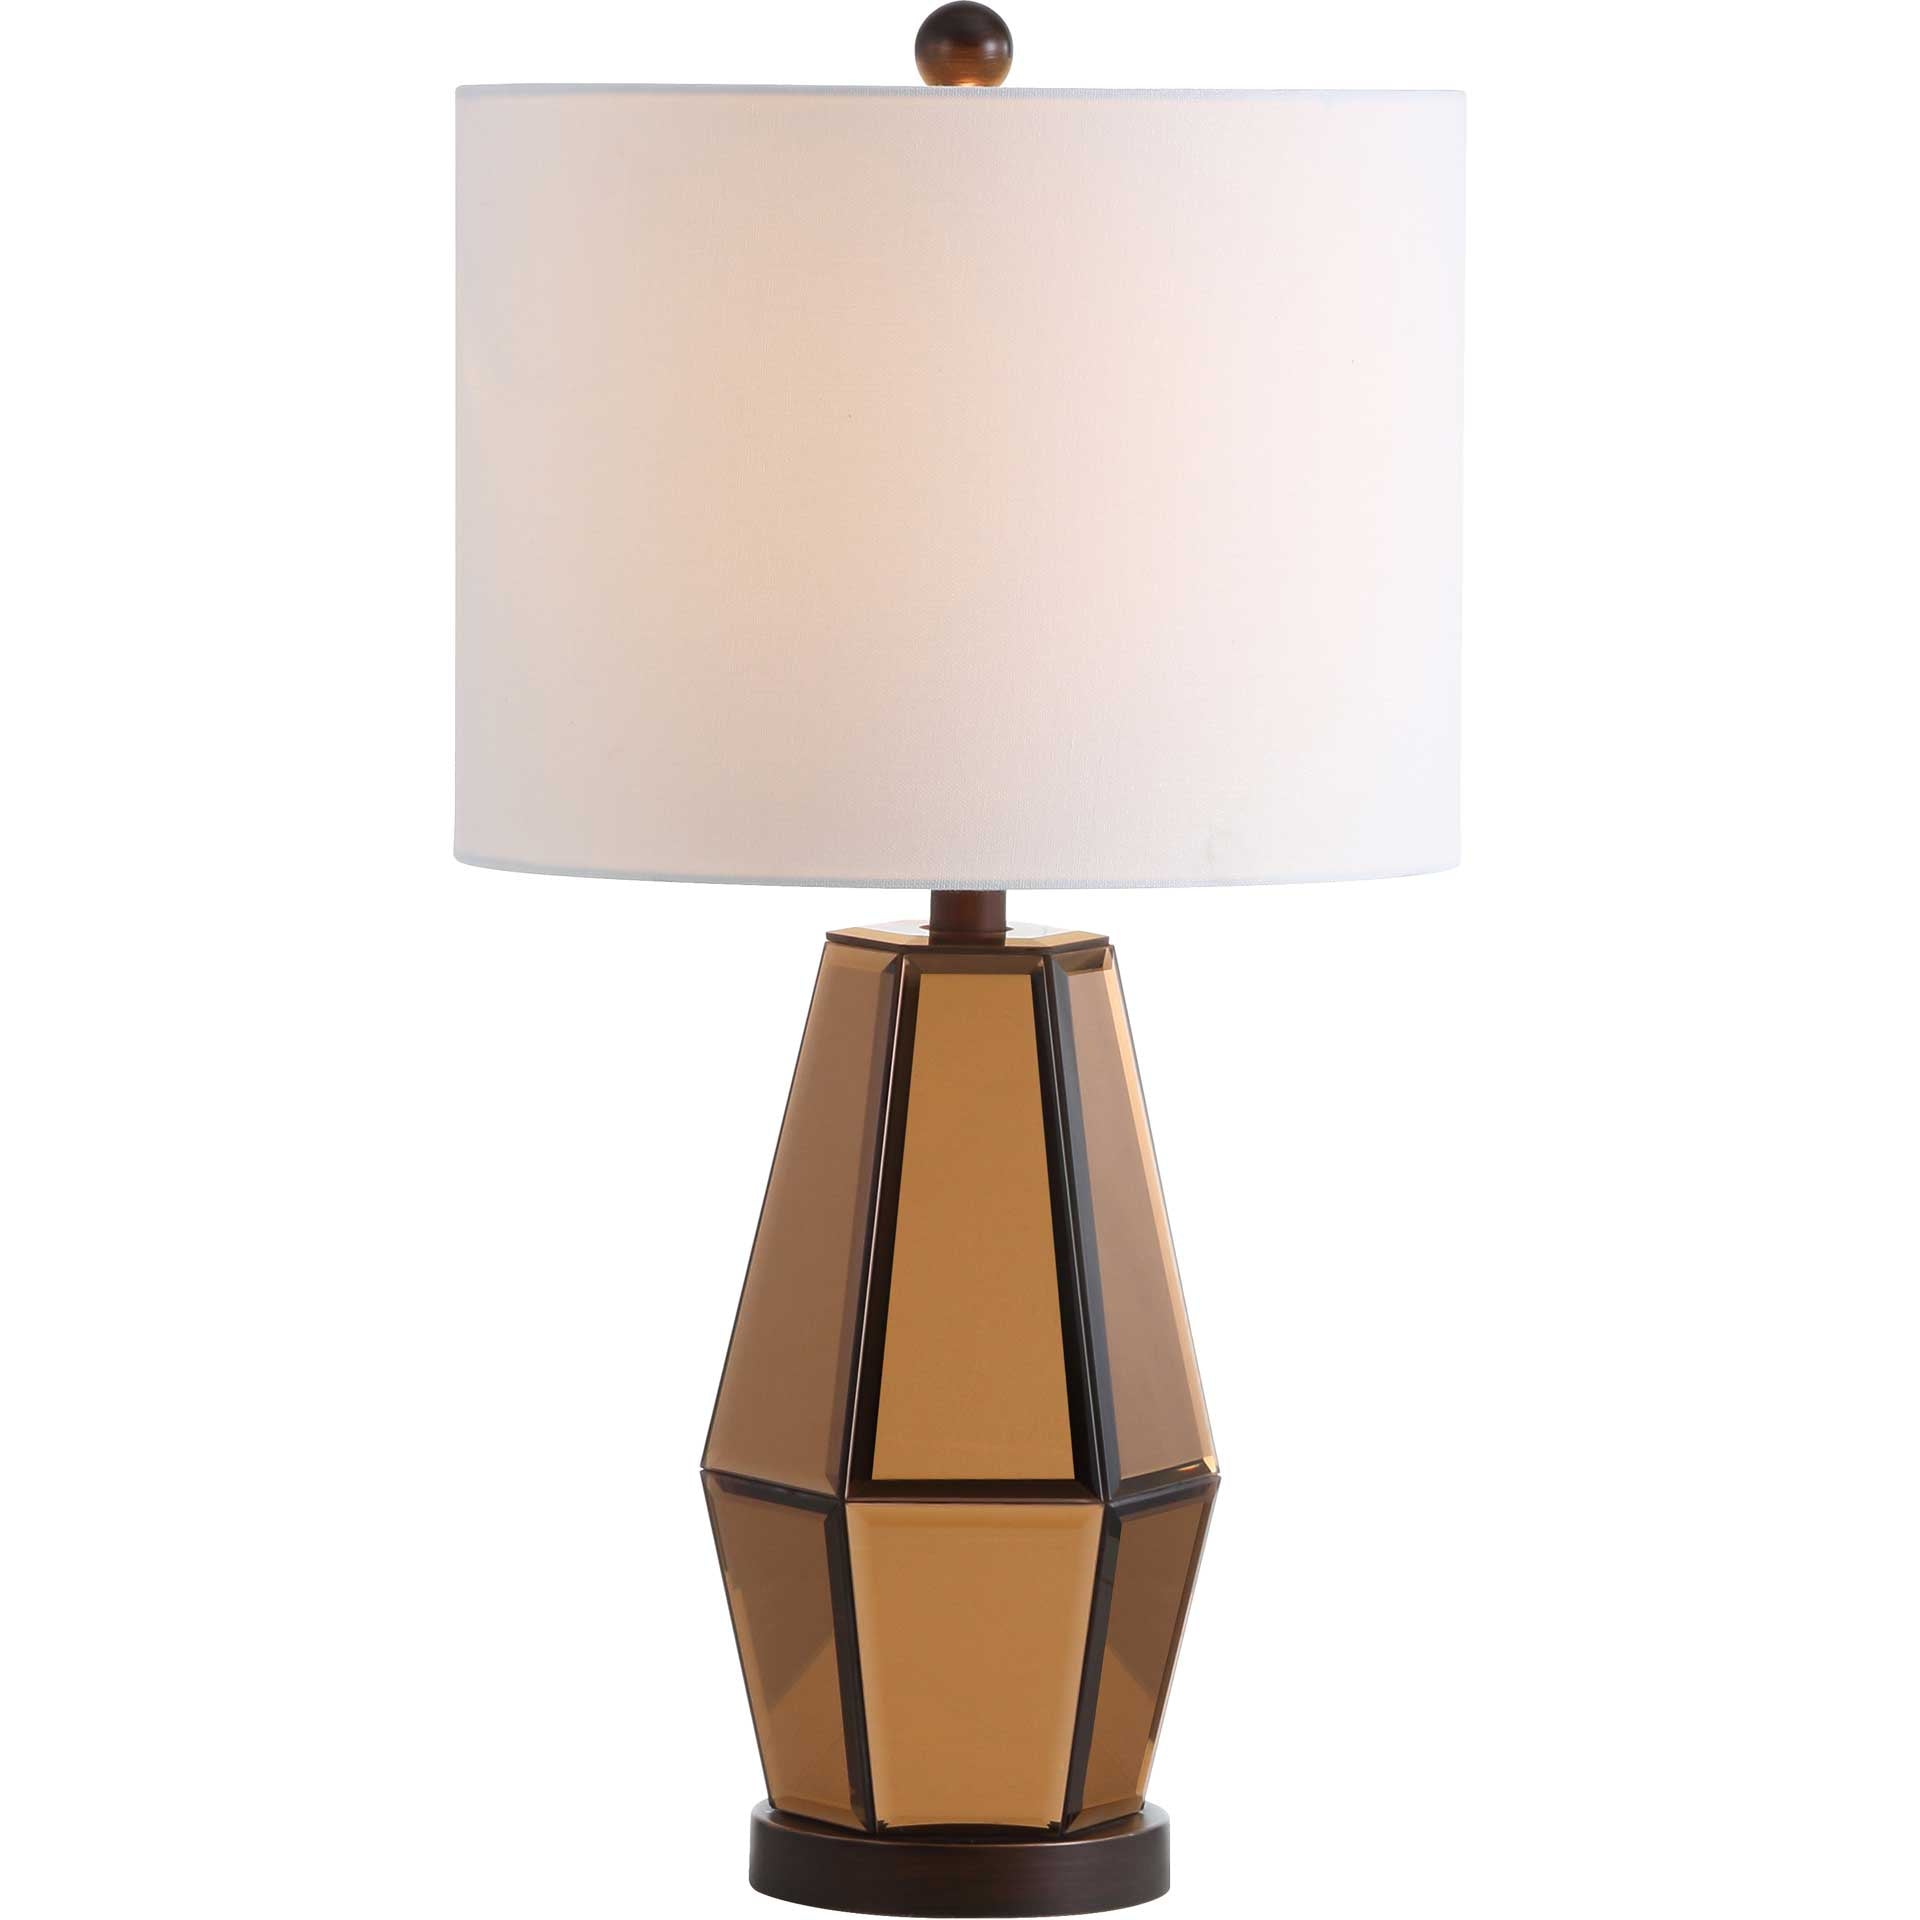 Amish Table Lamp Copper/Dark Brown